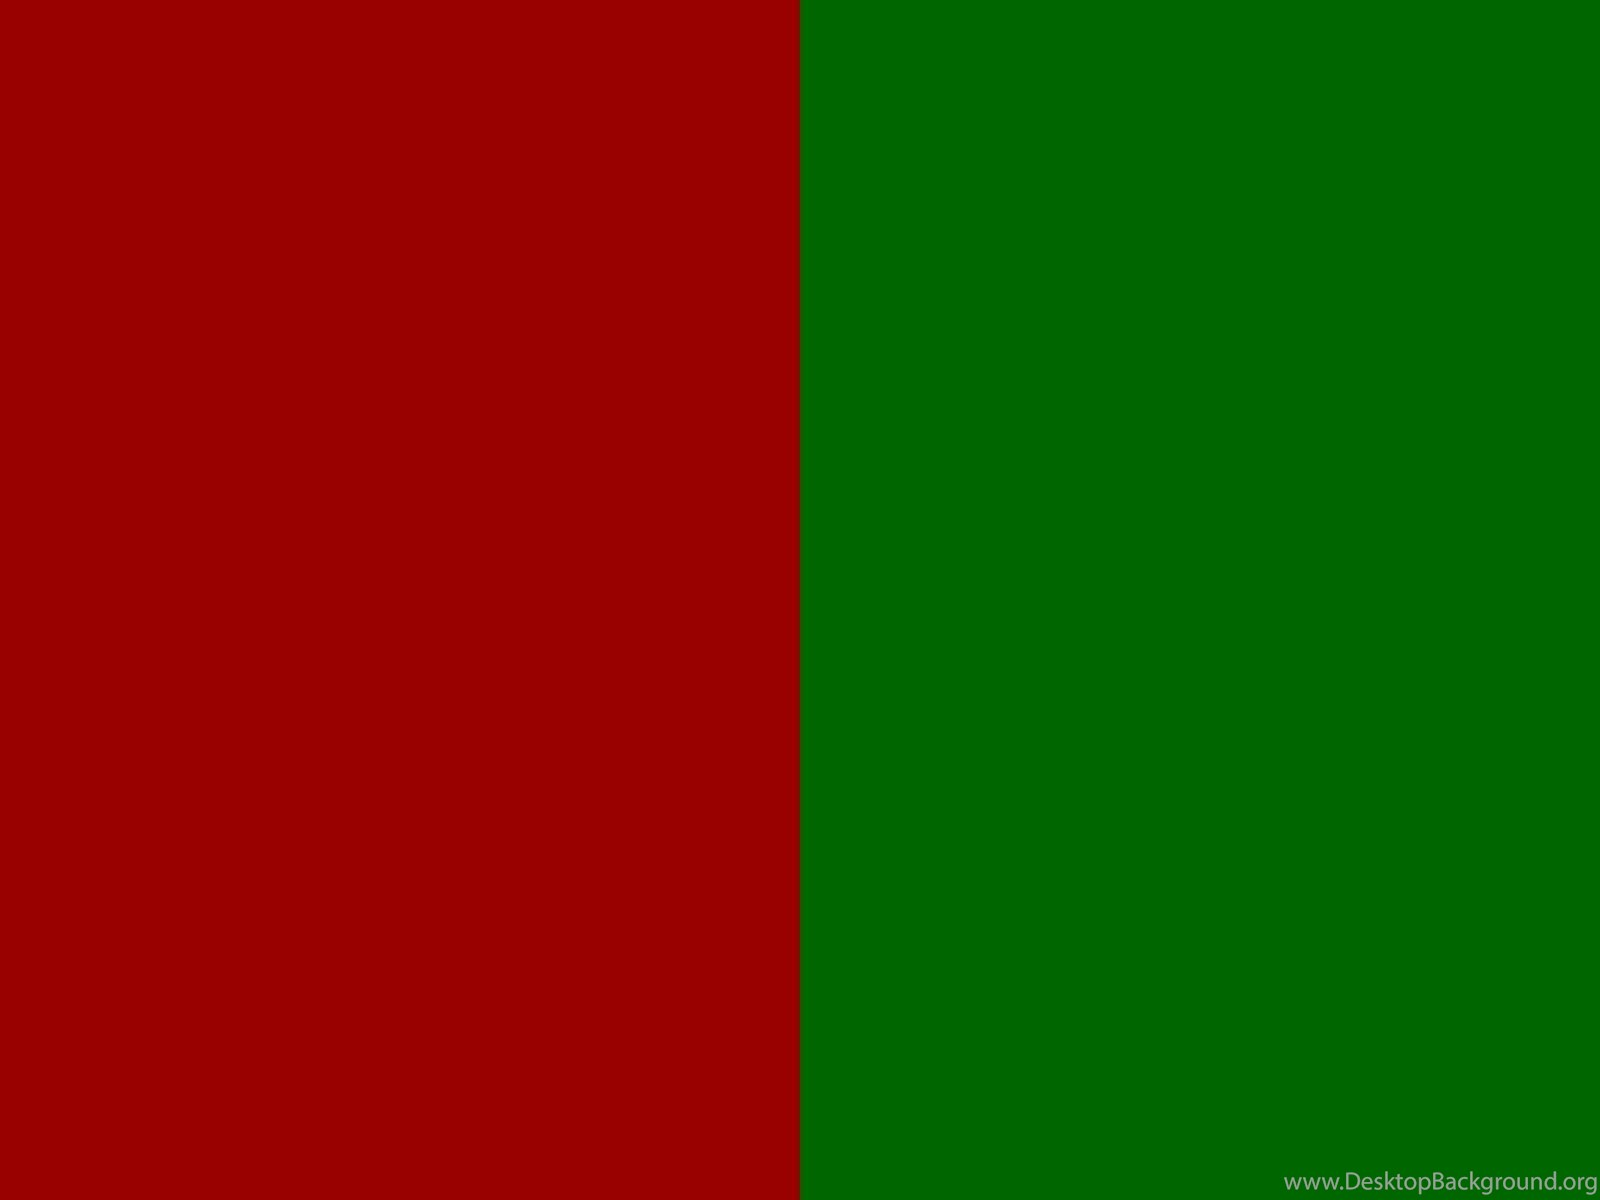 1920x1200 ou crimson red pakistan green two color background